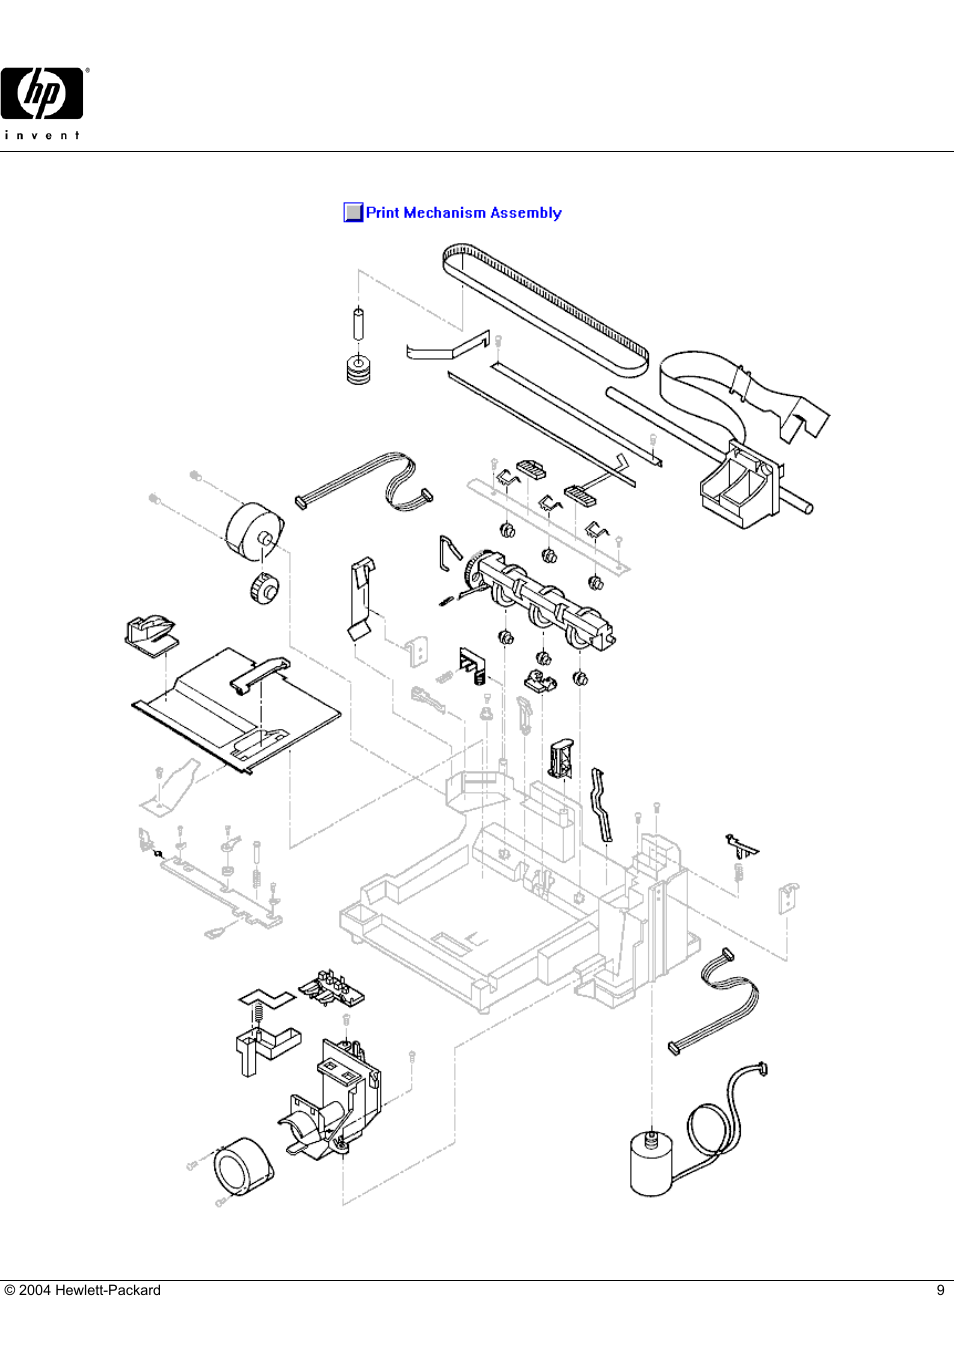 Deskjet 693c, Hp parts reference guide, Print mechanism